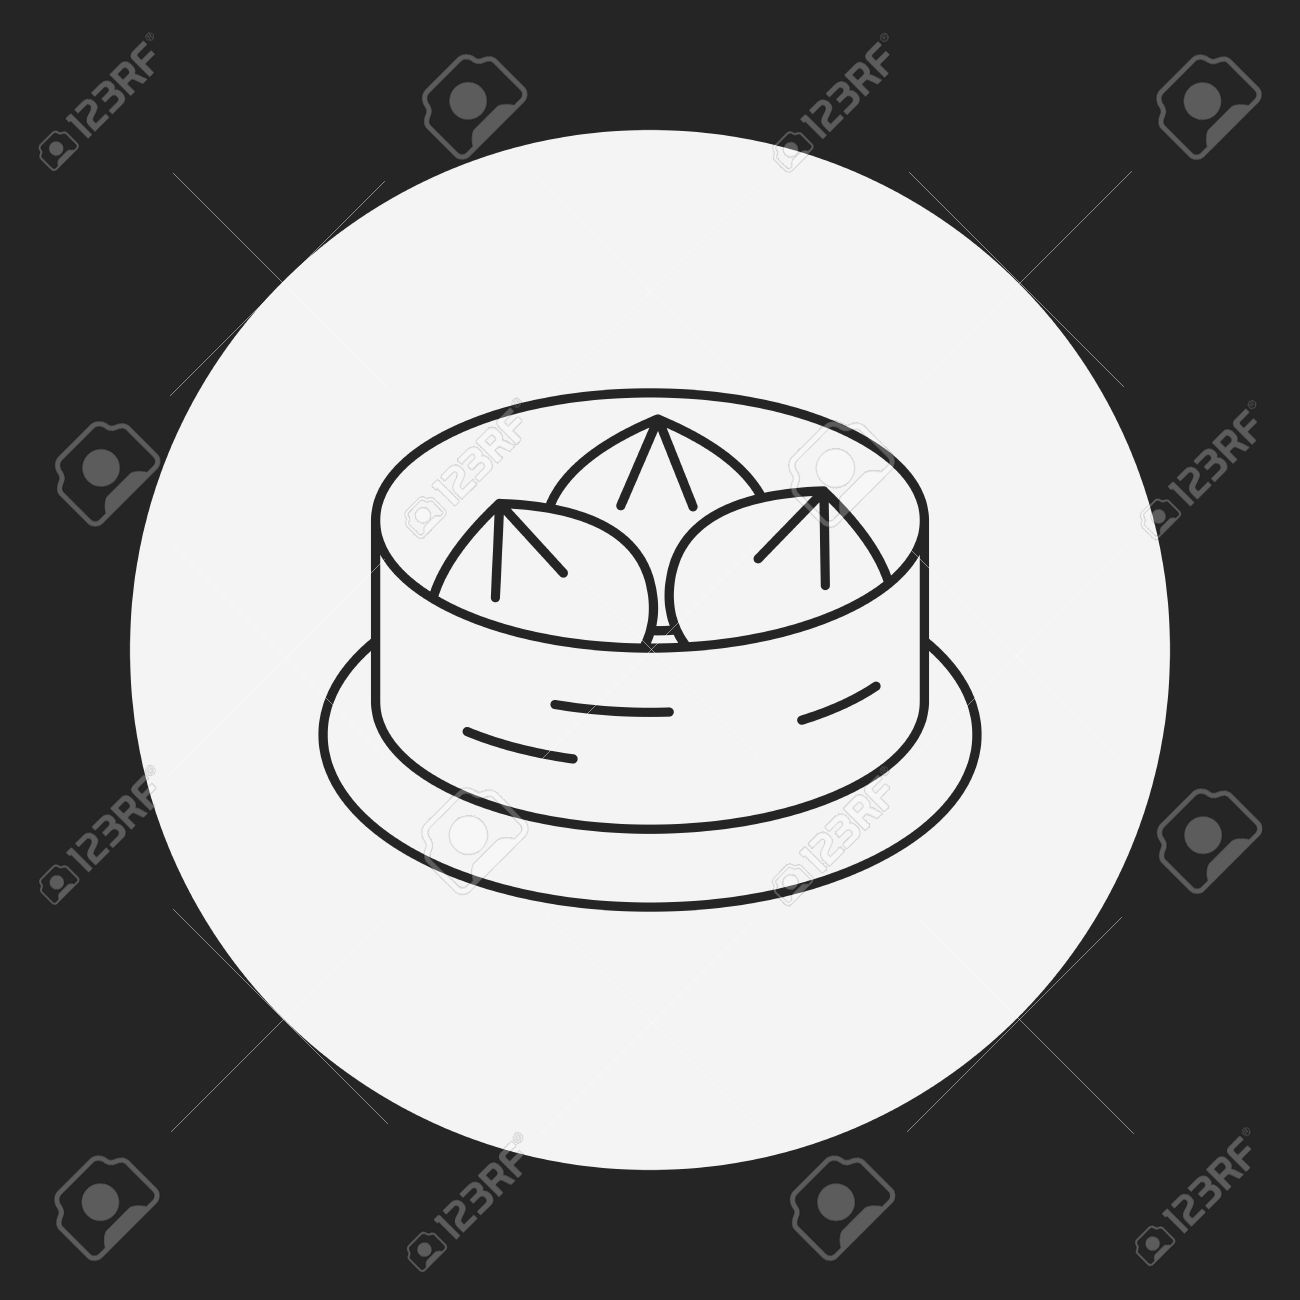 Steamed Stuffed Bun Line Icon Royalty Free Cliparts, Vectors, And.